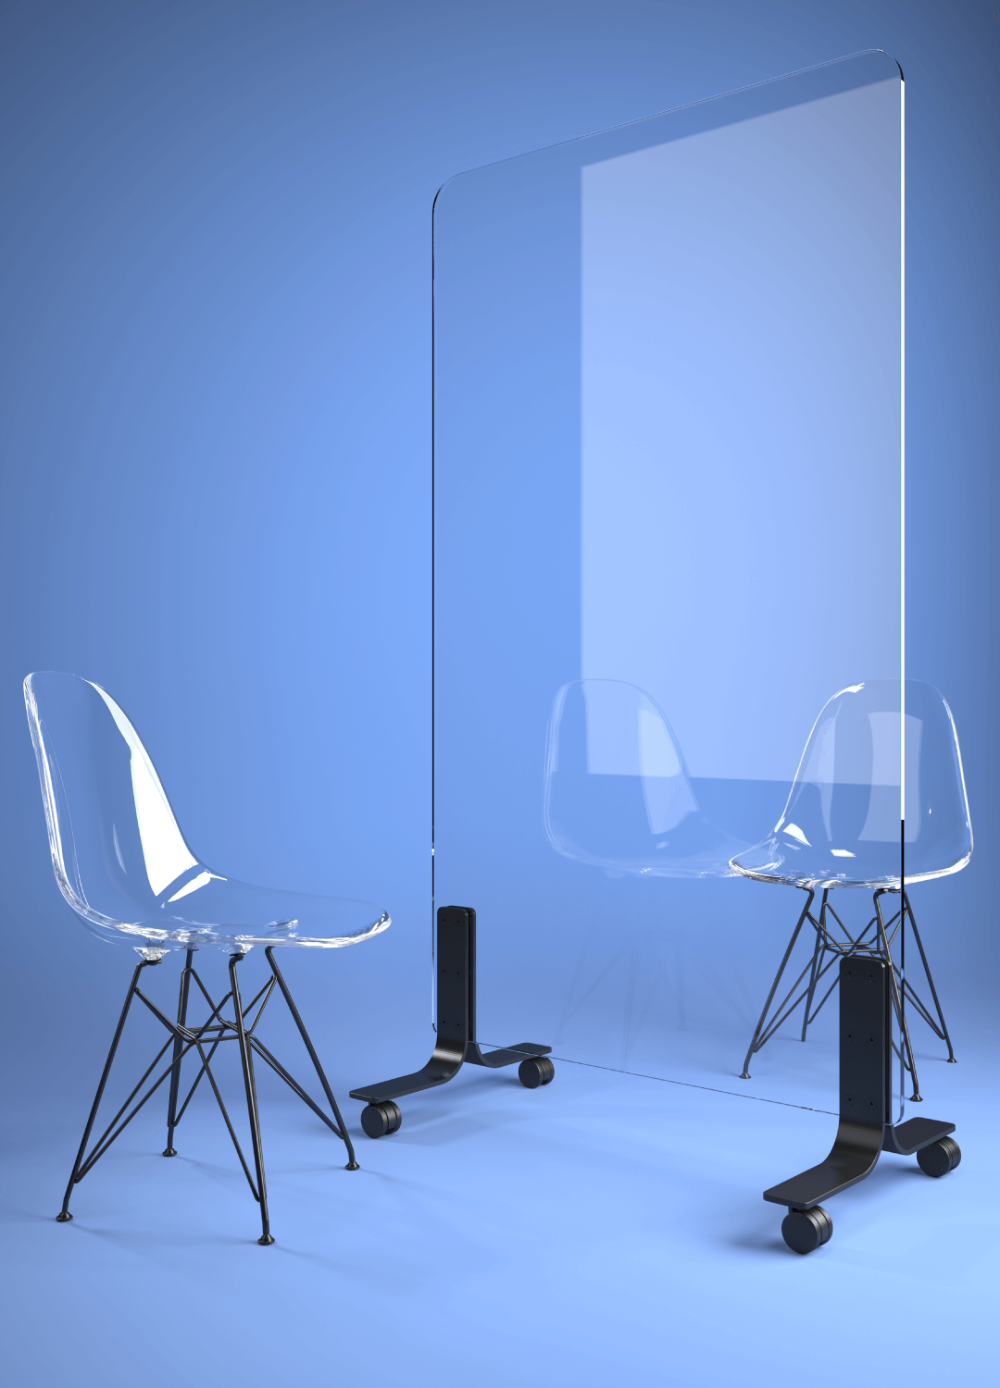 Pin on Dividing Spaces panels & screens